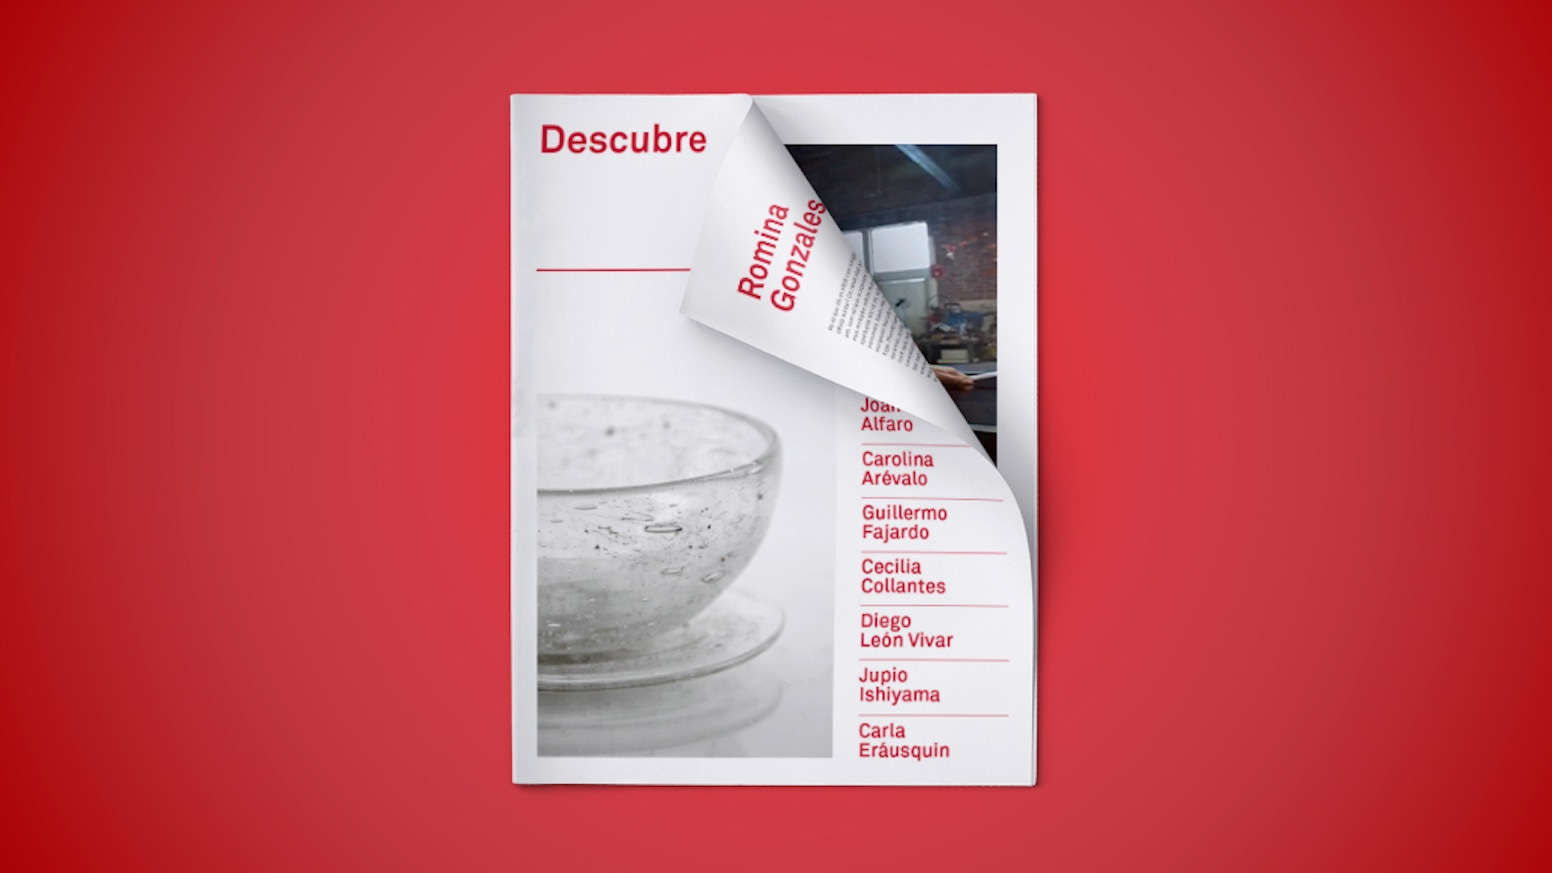 A publication showcasing the work of Peruvian contemporary artists and designers